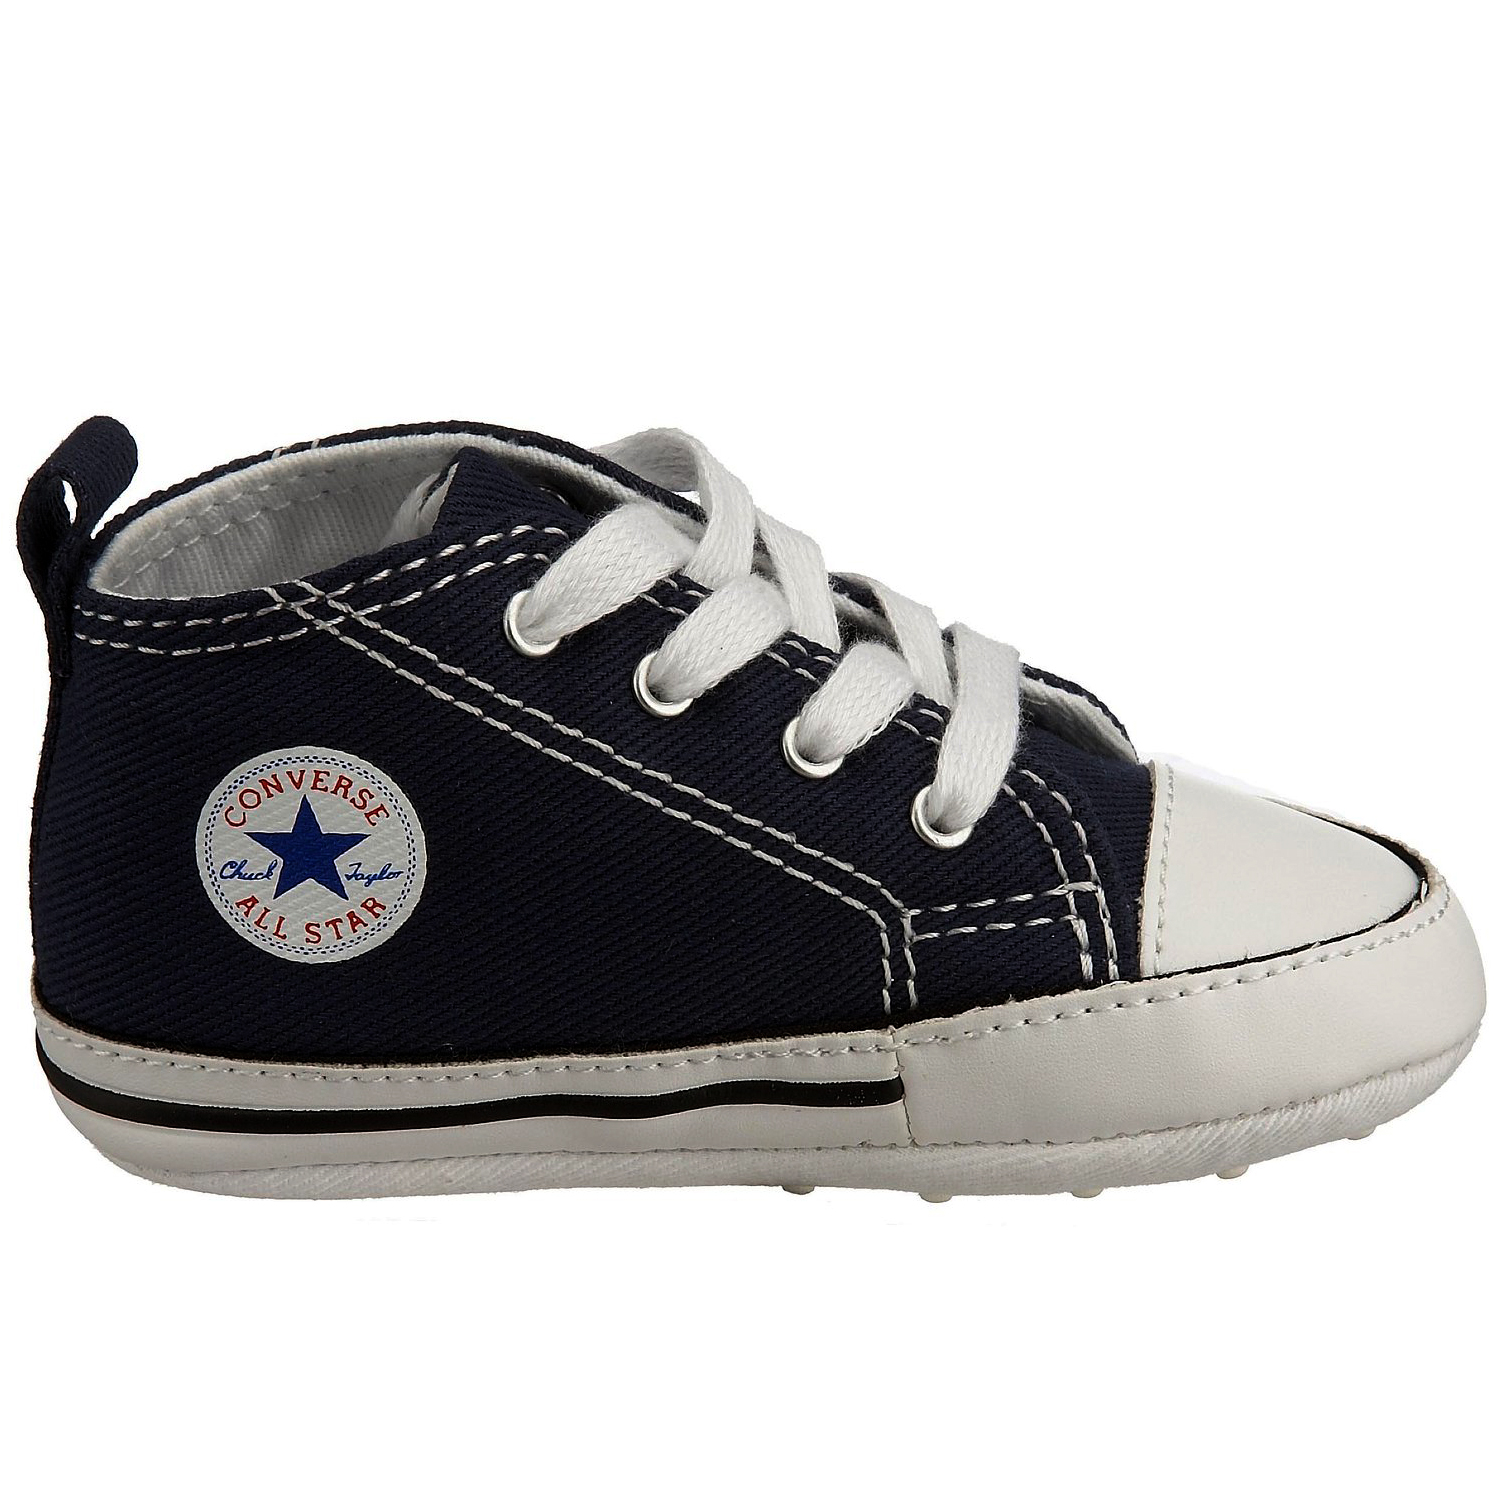 Converse First Star Crib Shoe Boys by Converse